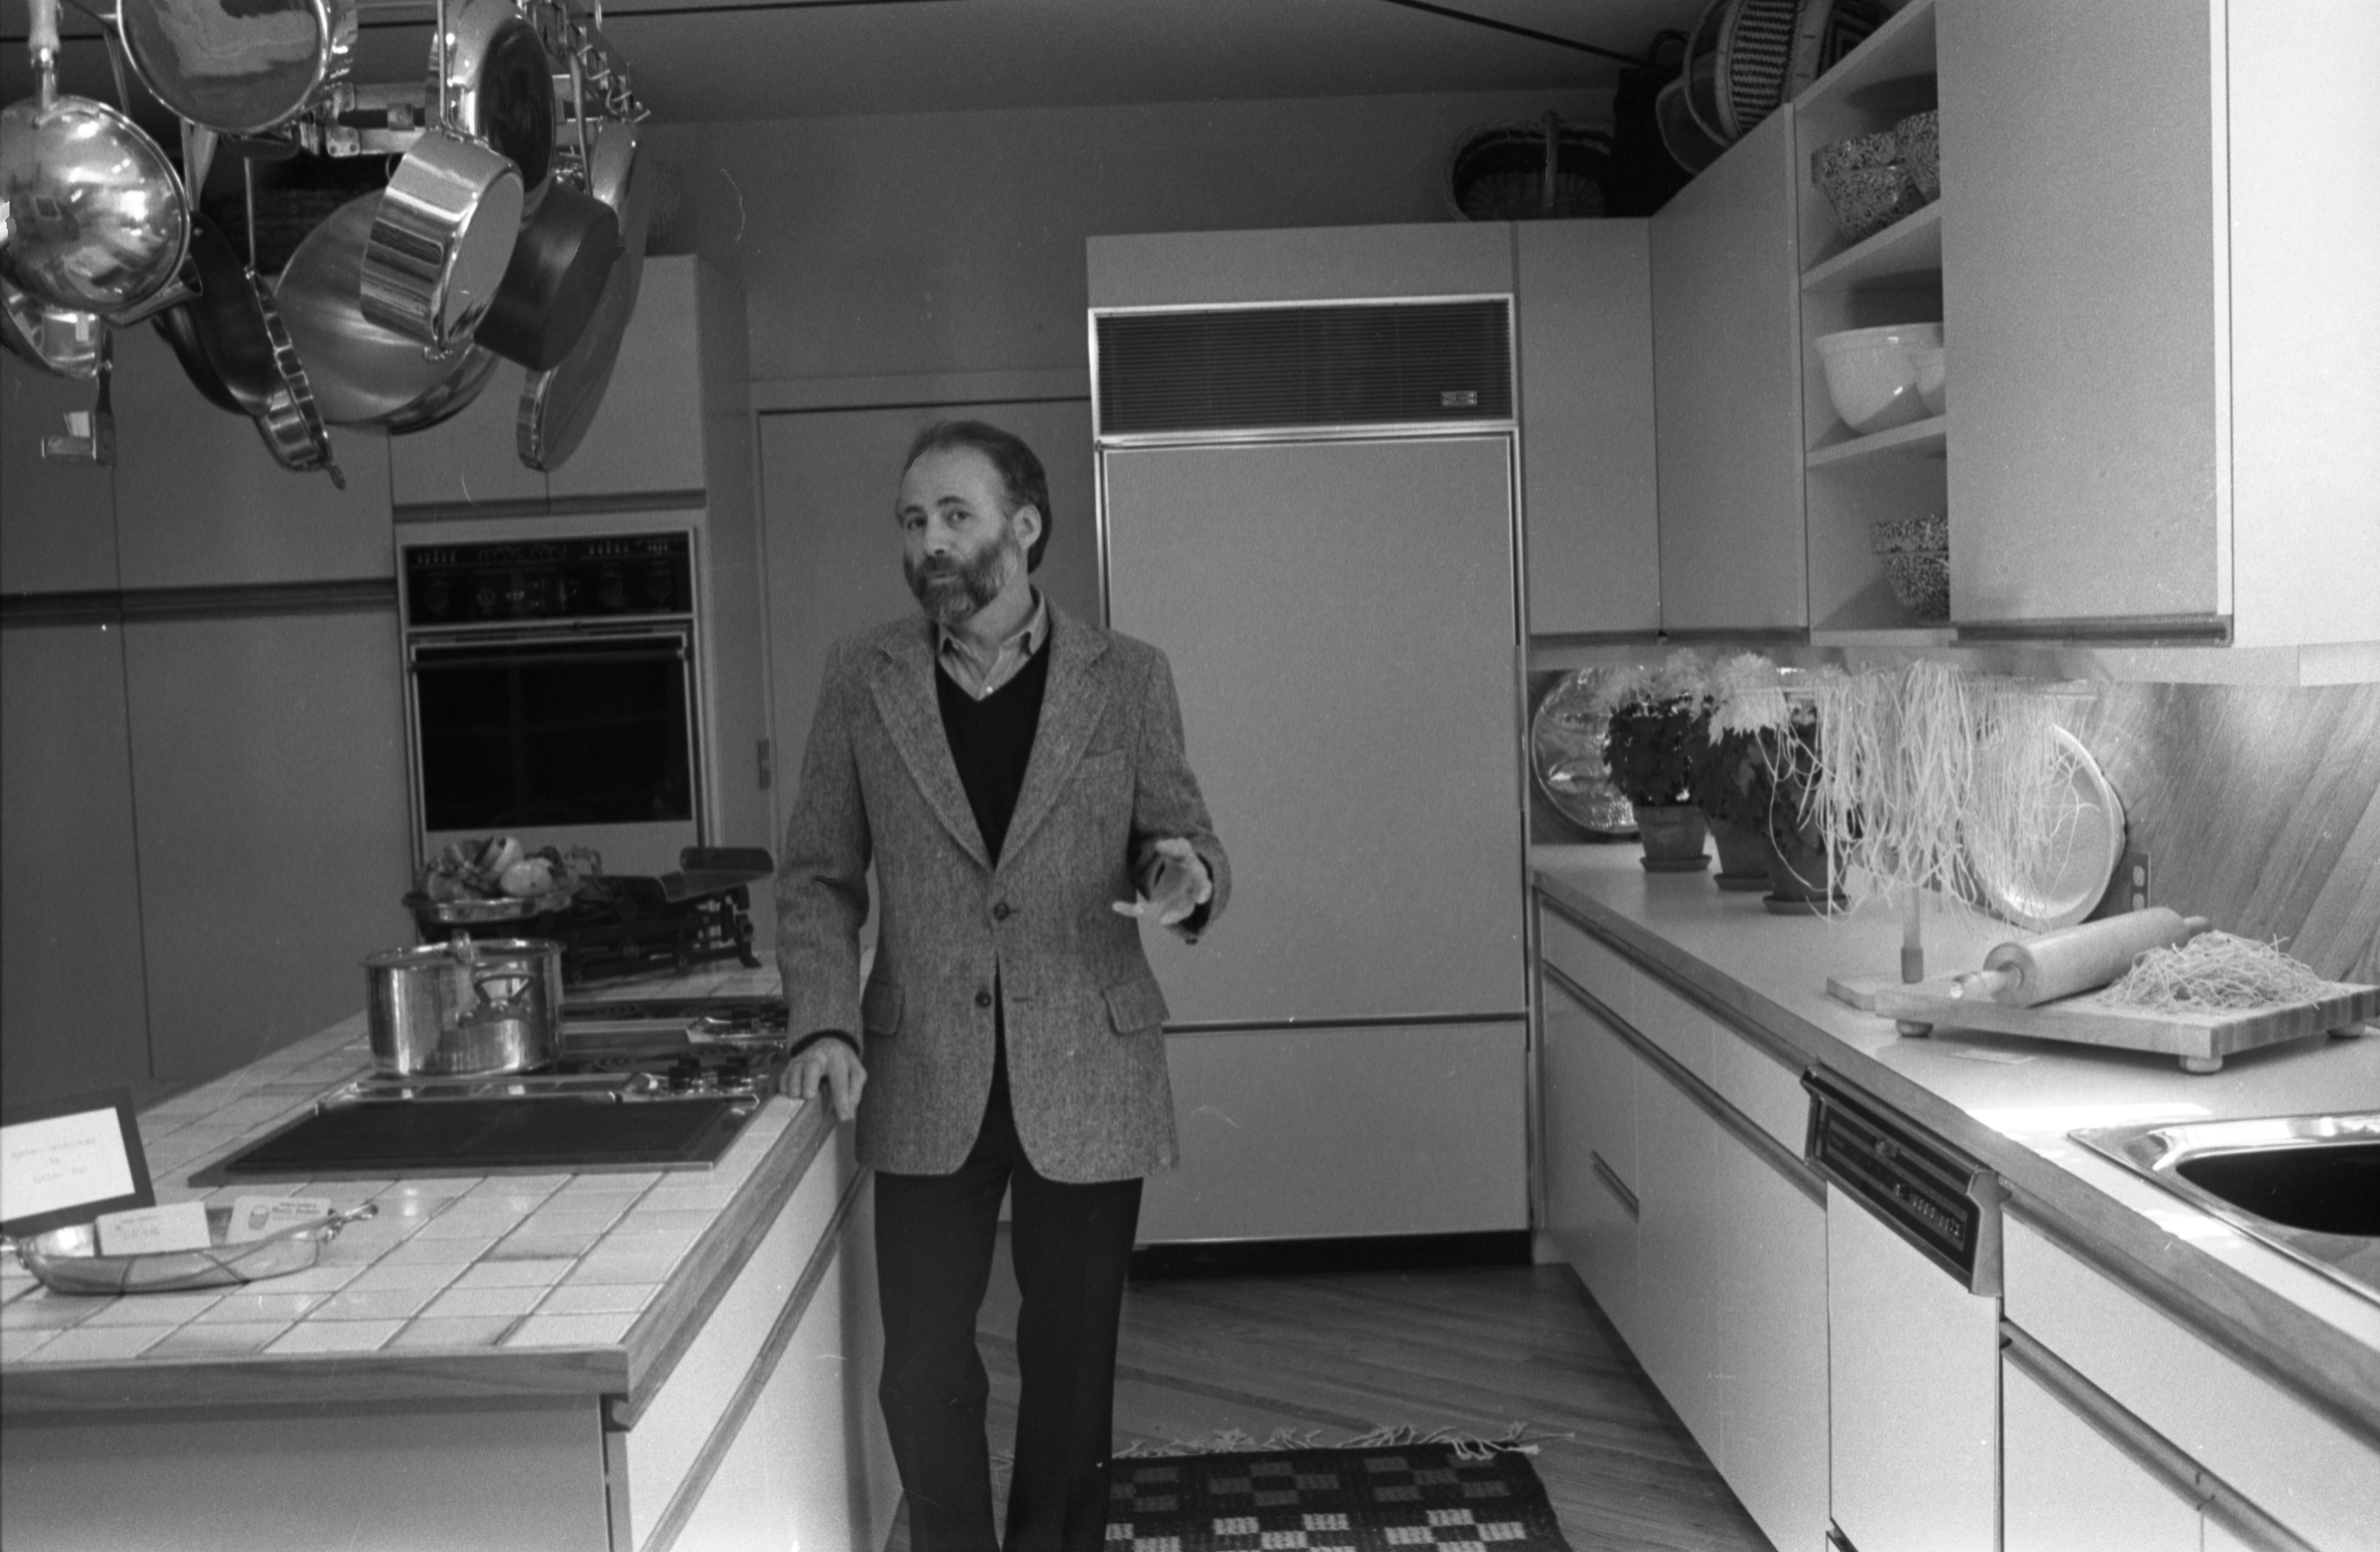 Jim DeRosia, Interior Designer For The Hermitage House Kitchen Remodel, March 10, 1982 image